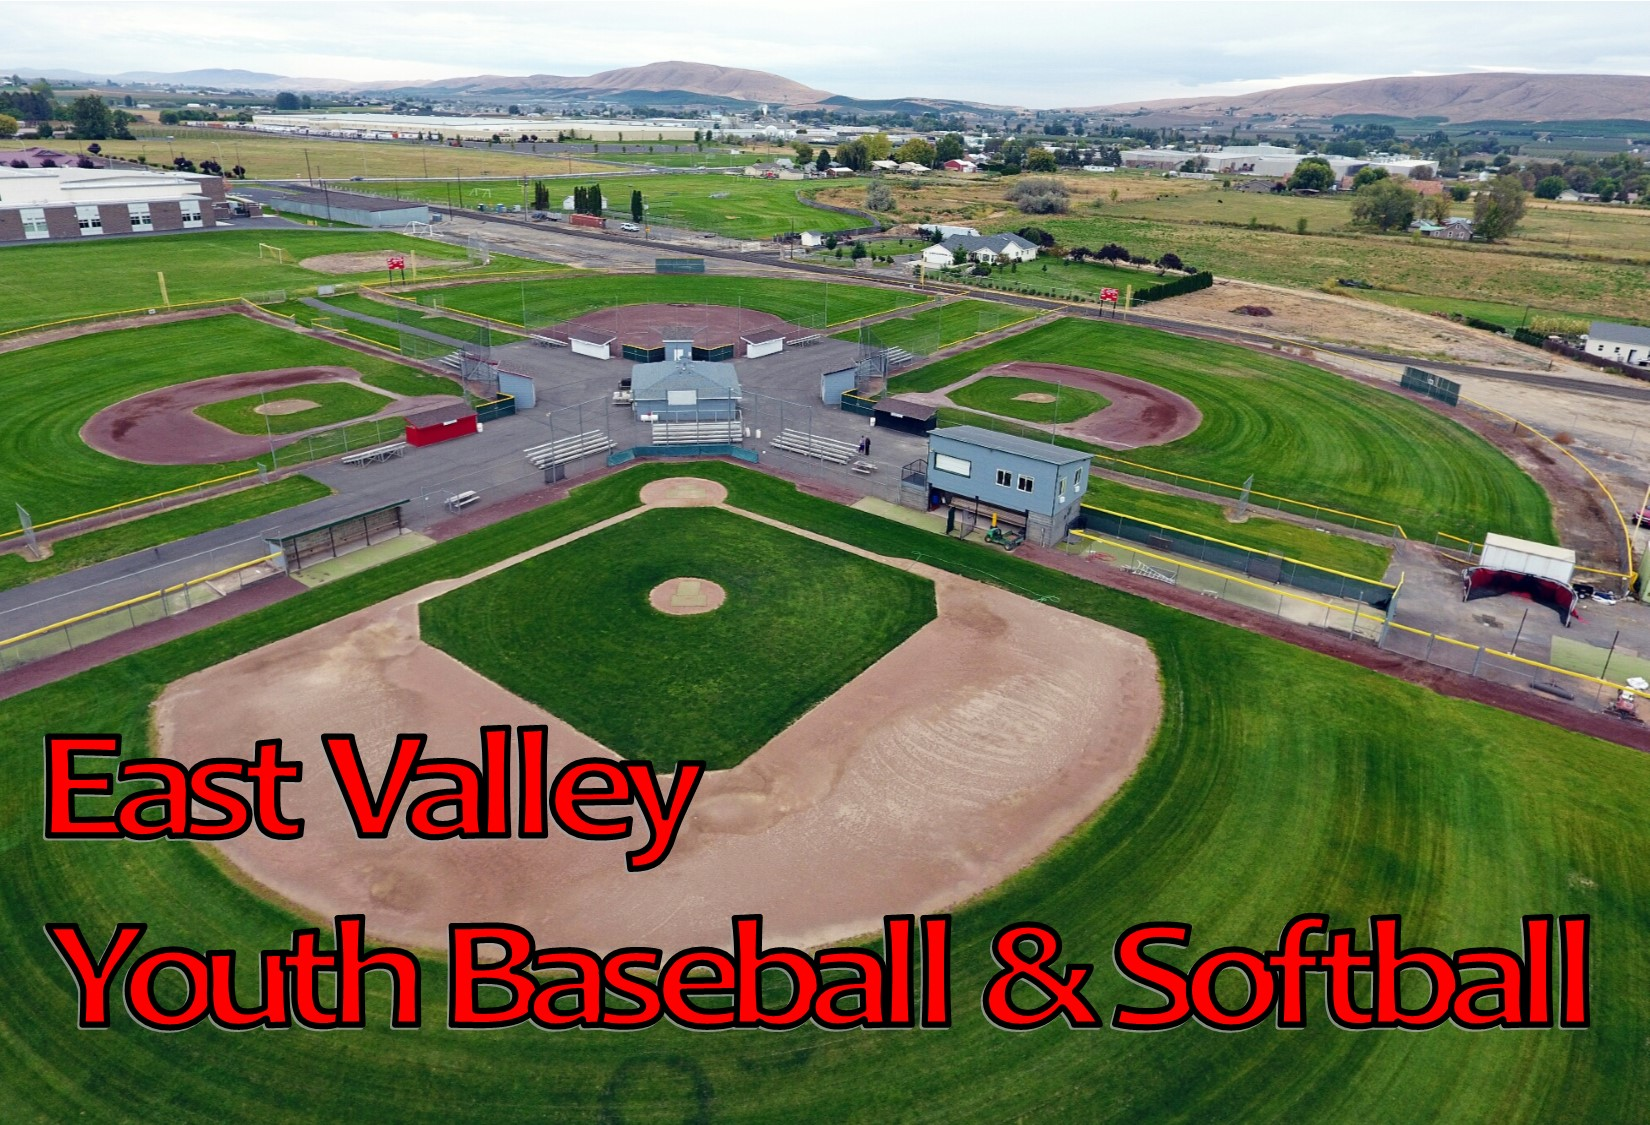 East Valley Youth Baseball & Softball, Baseball, Run, Field